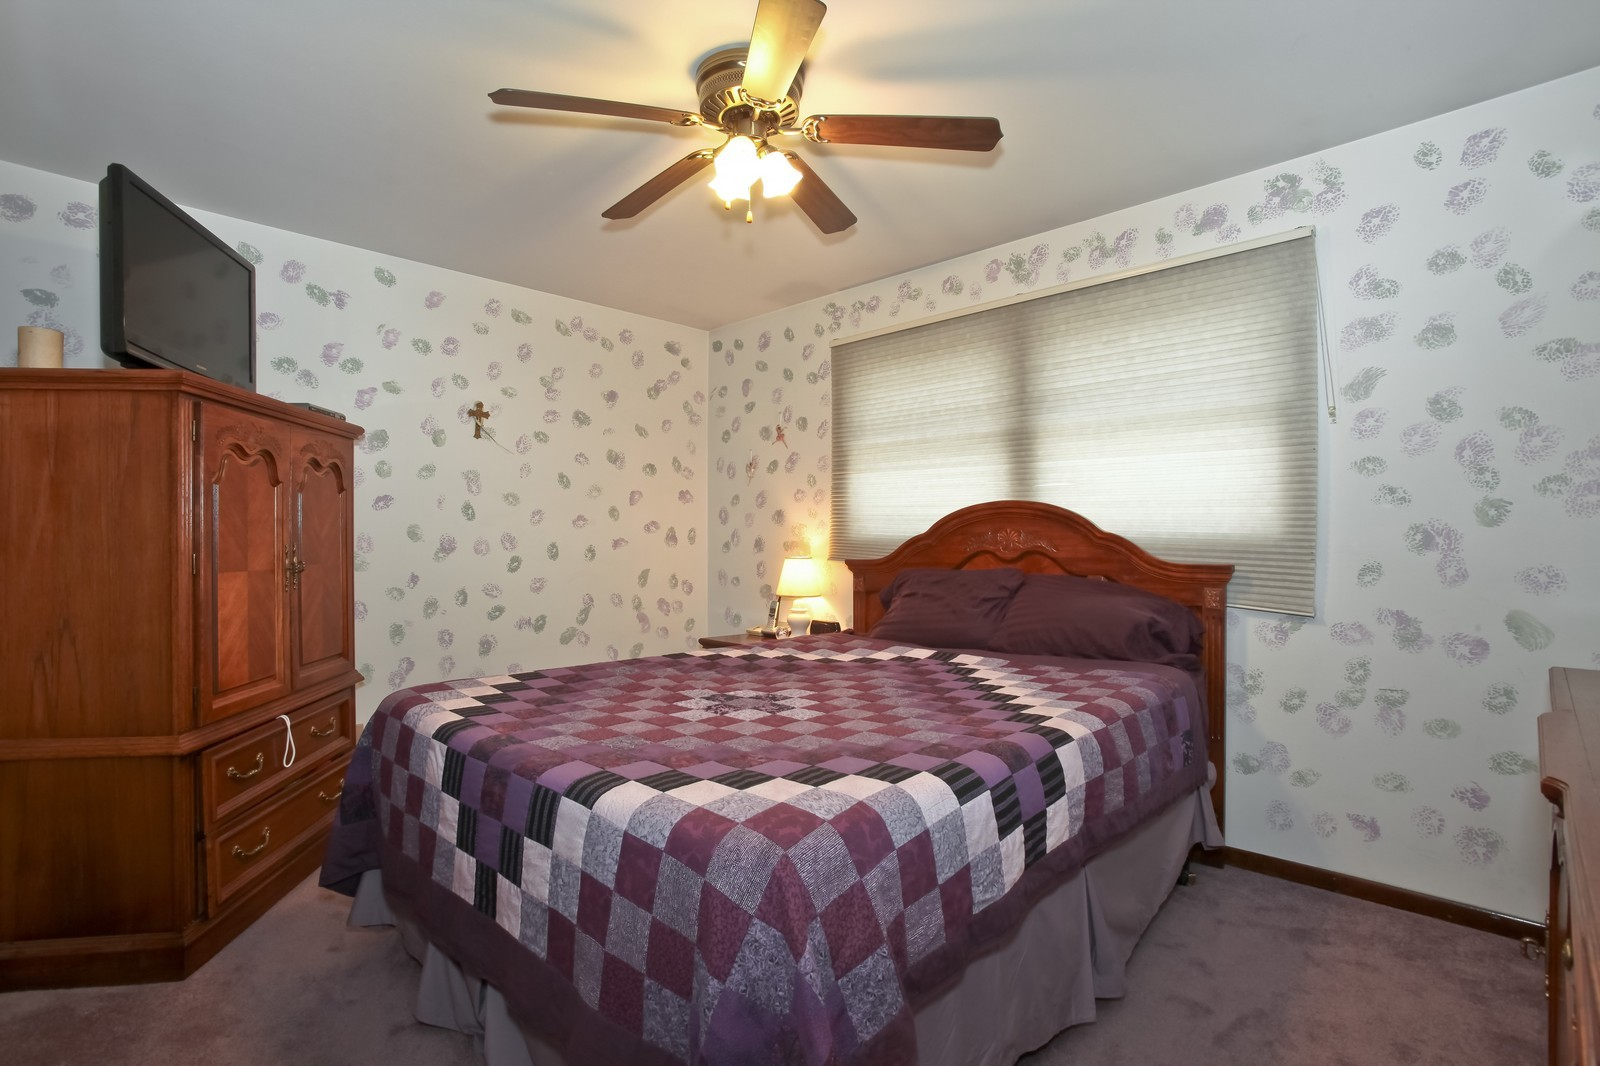 Real Estate Photography - 7609 W 173rd St, Tinley Park, IL, 60477 - Master Bedroom